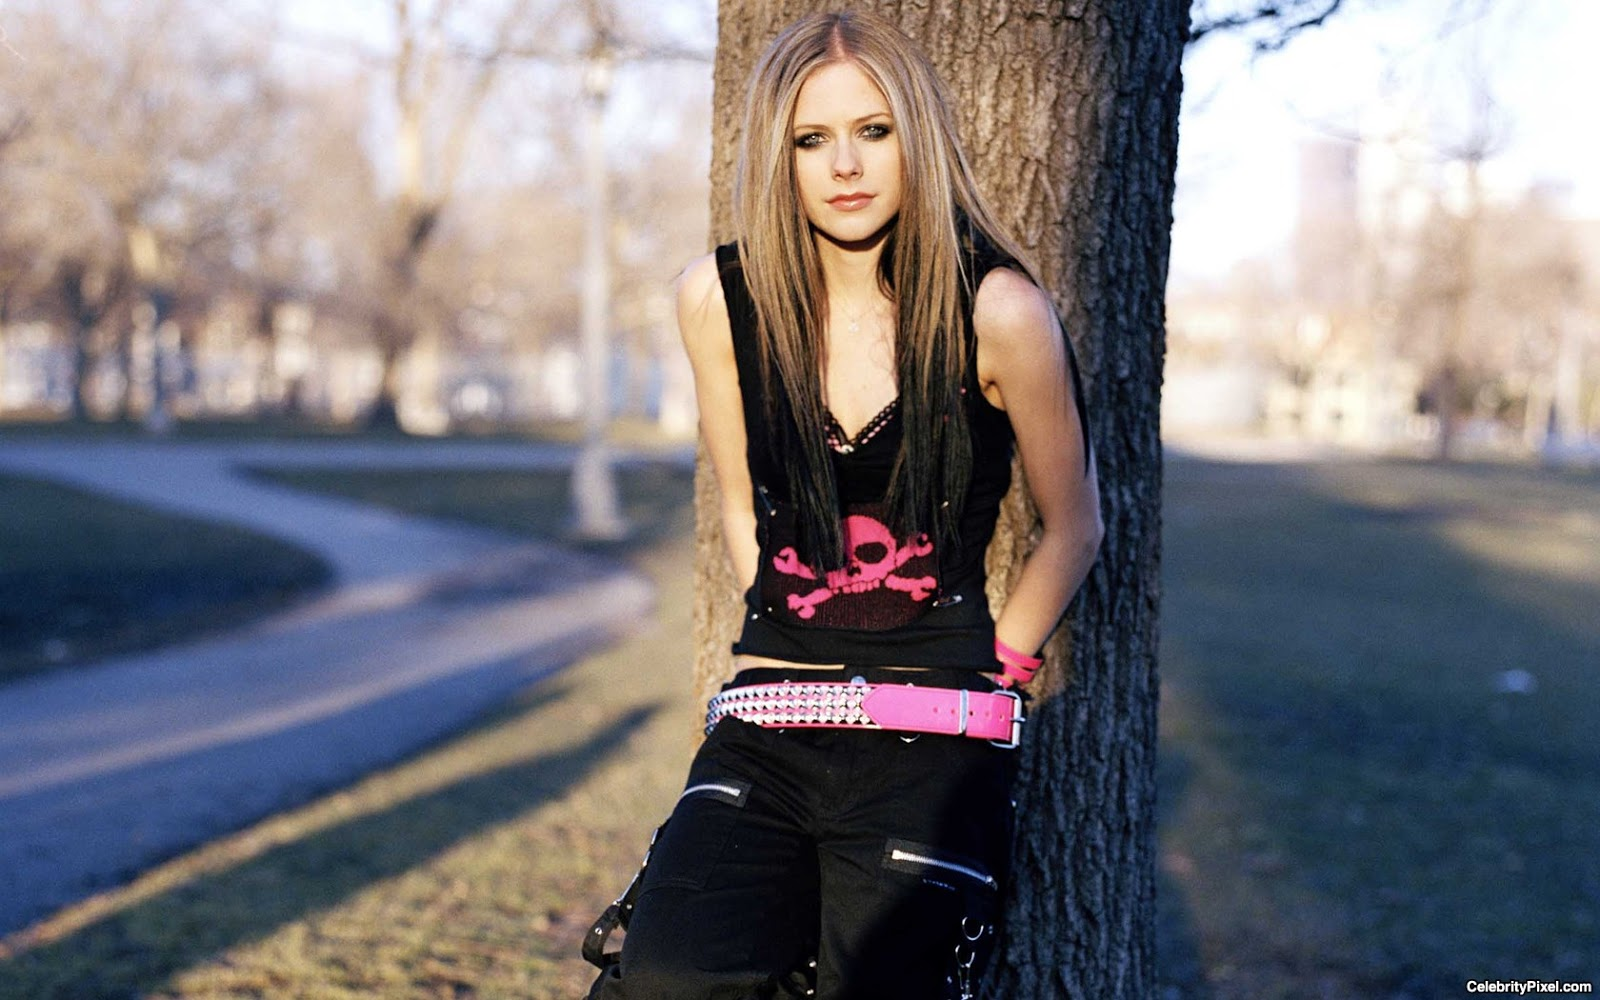 Avril Lavigne Hd Wallpapers | HD Wallpapers